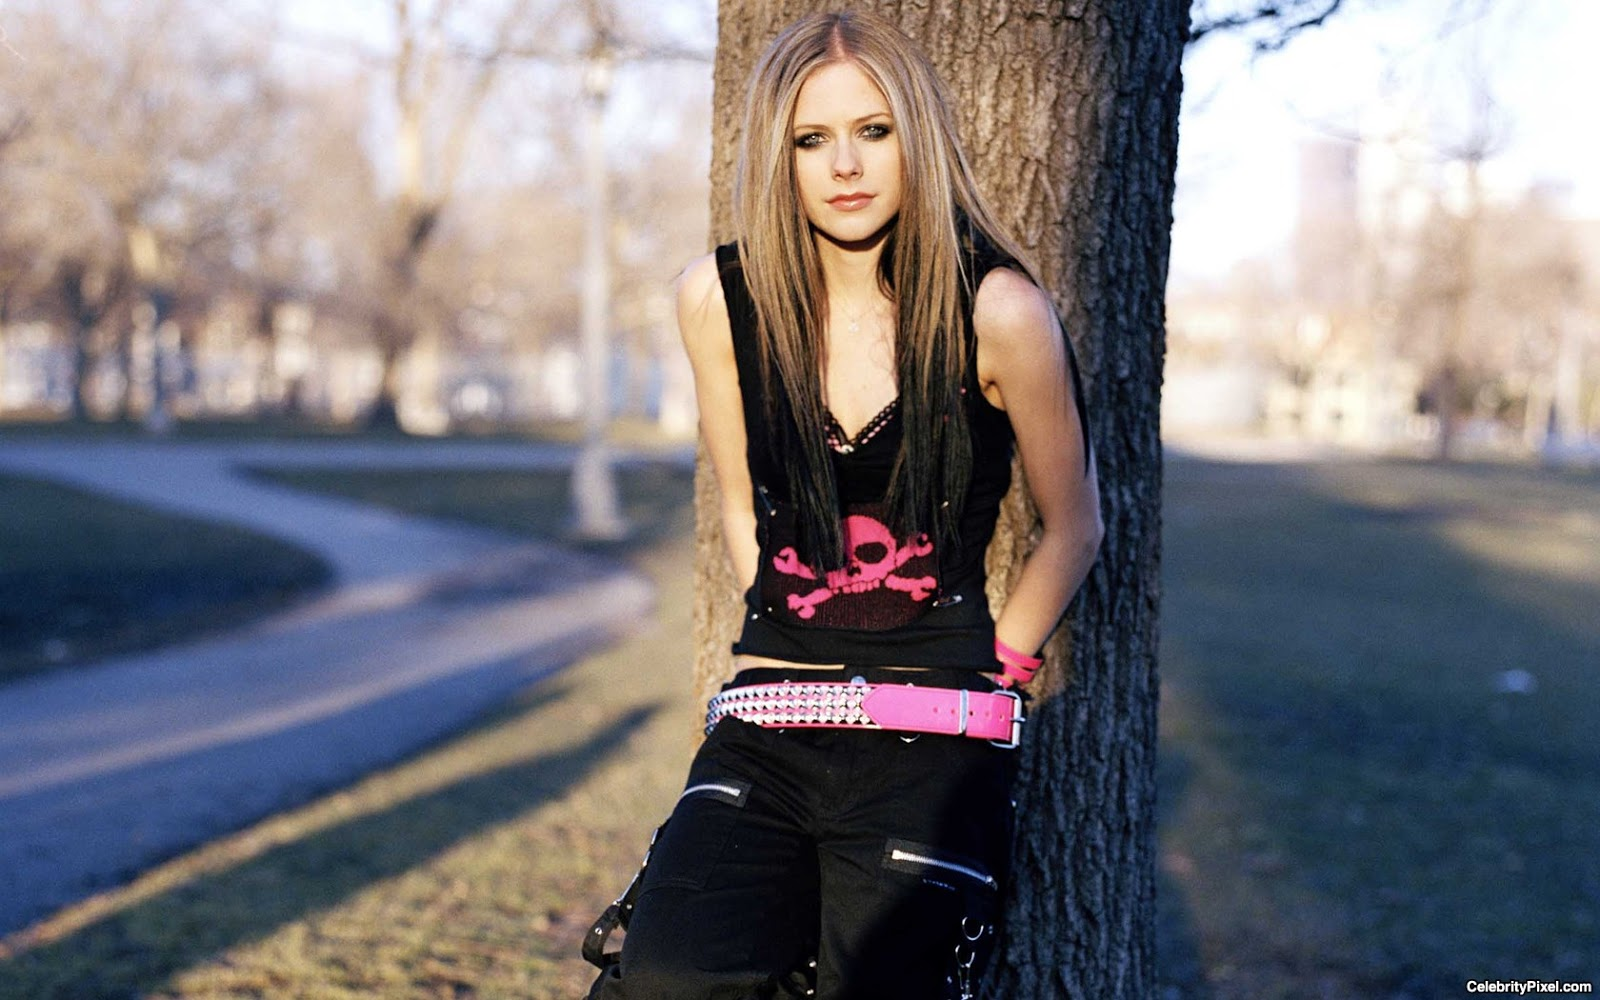 Avril Lavigne Hd Wallpapers | HD Wallpapers